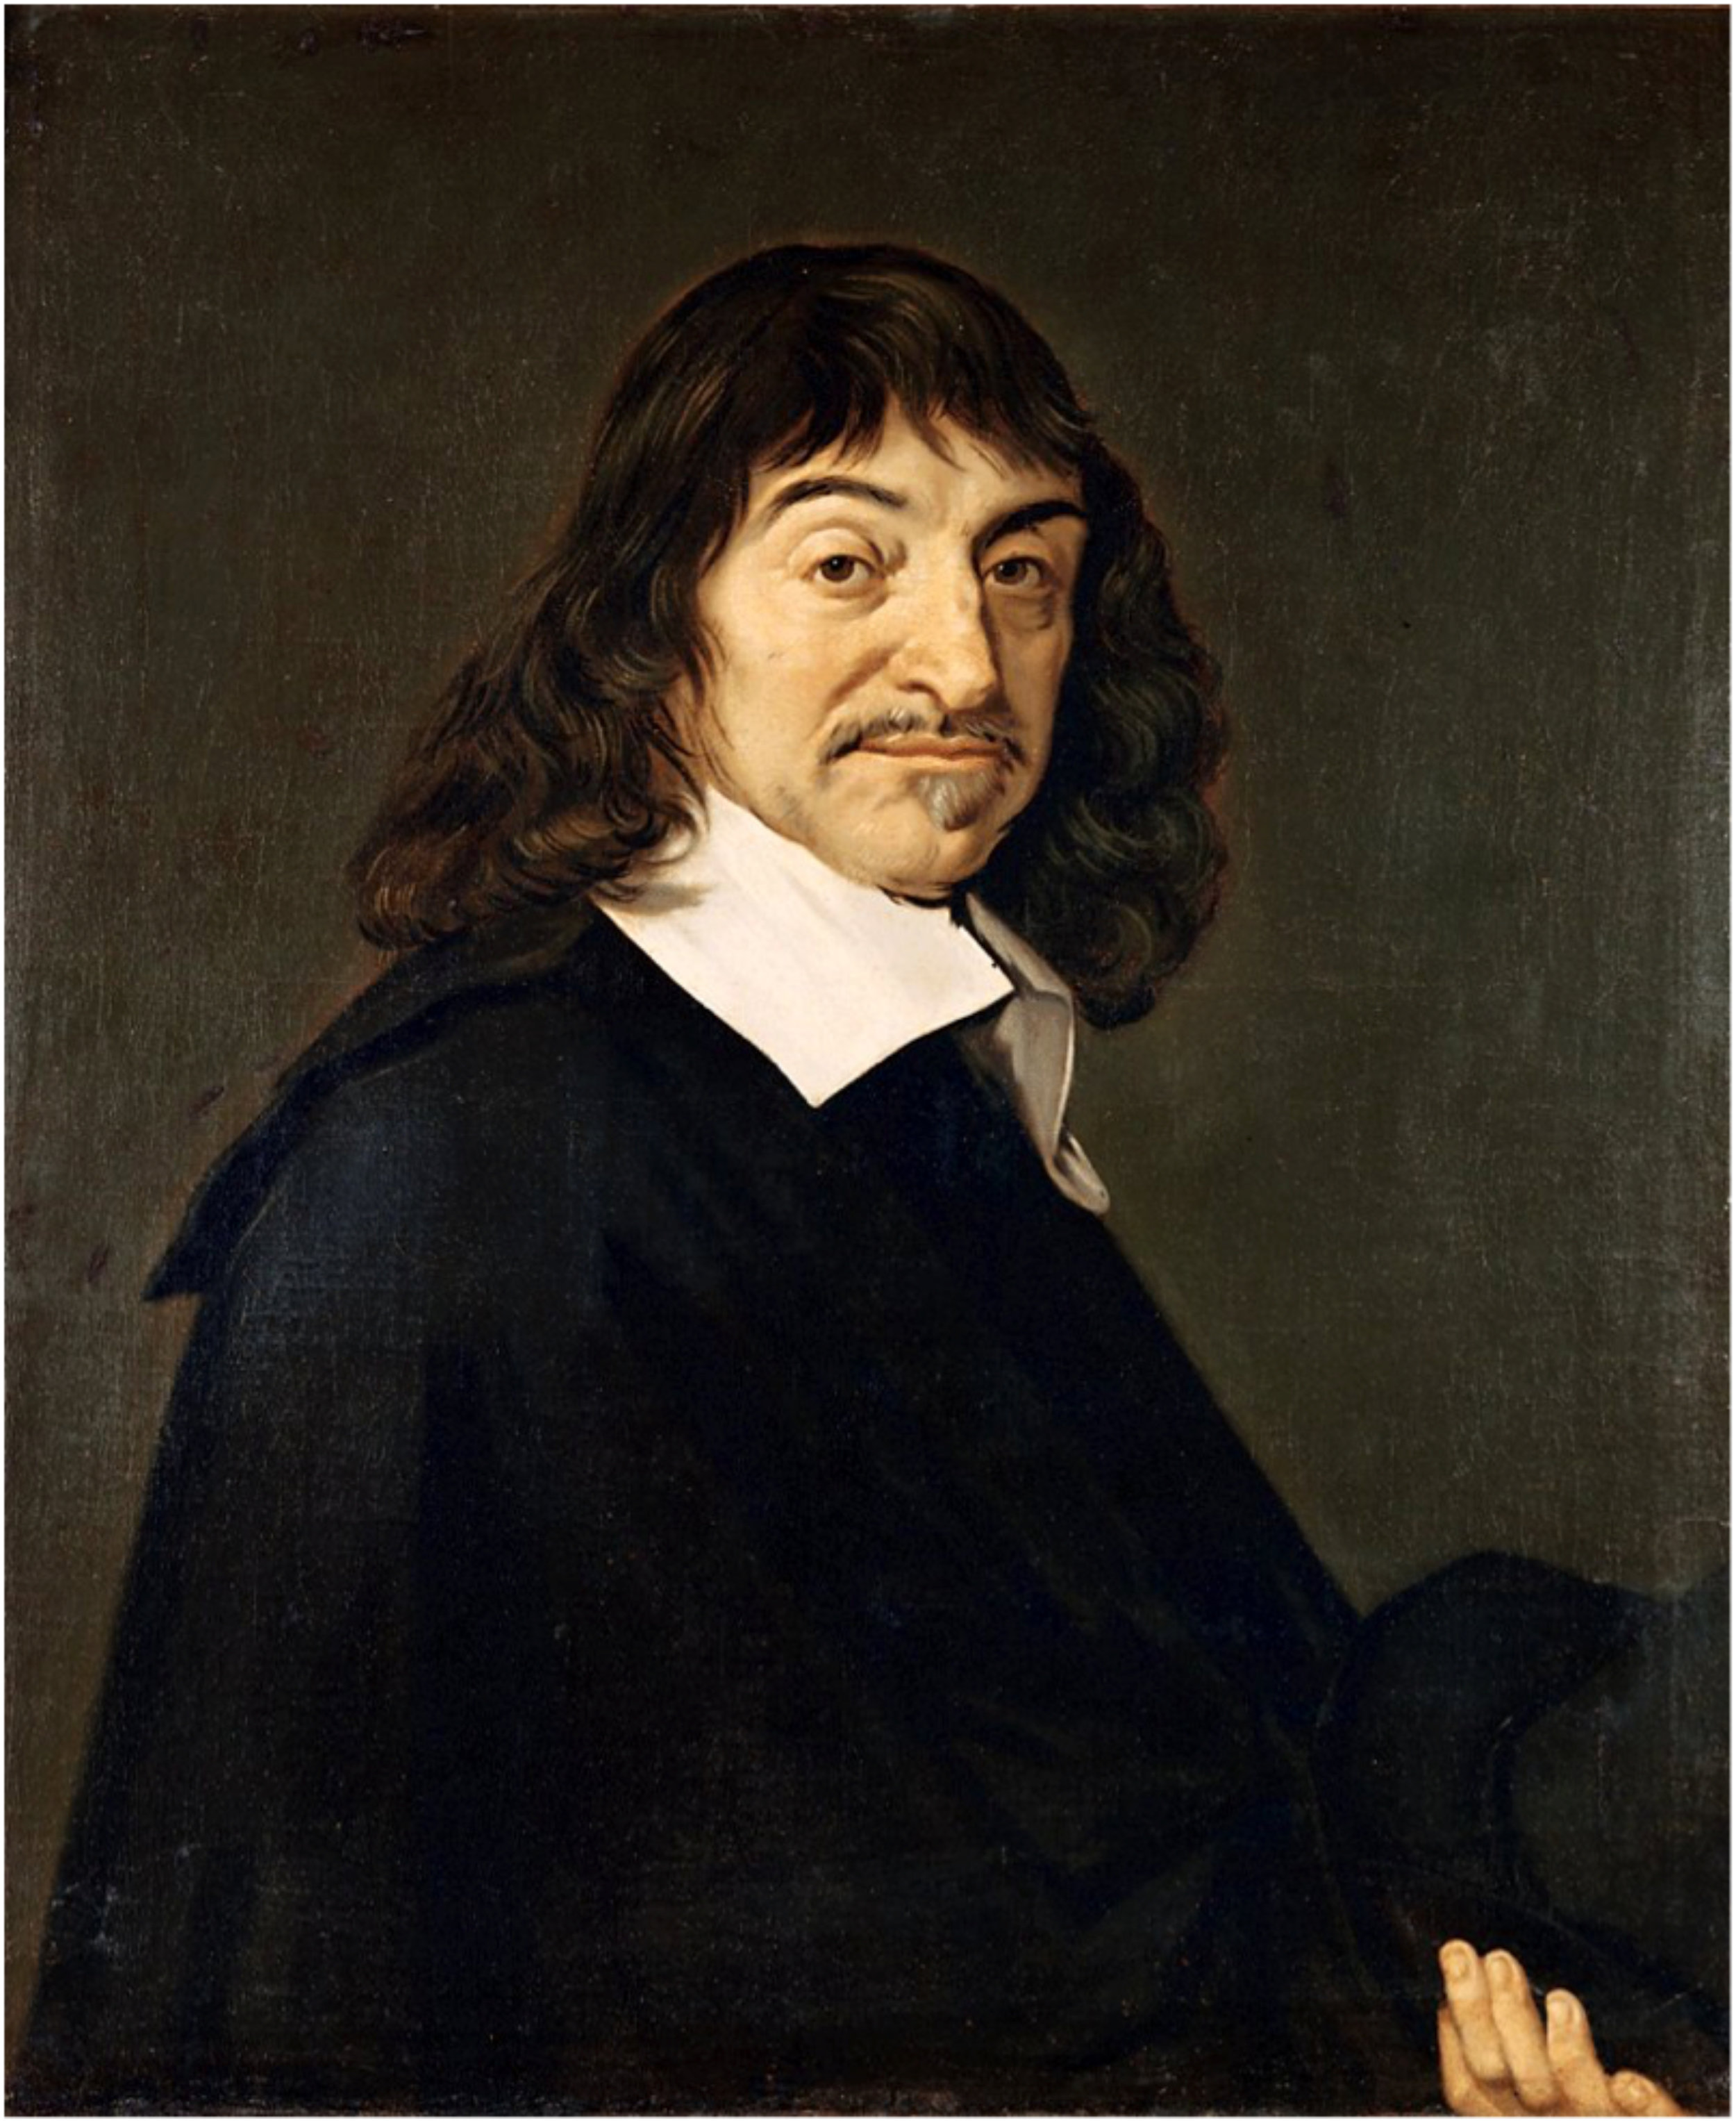 Portrait of René Descartes (1596-1650) circa 1649-1700. Oil on canvas. Height: 77.5 cm (30.5 in). Width: 68.5 cm (27 in).  Louvre Museum. INV. number 1317. 18th century: collection of the dukes of Orléans. 1785: acquired by Louis XVI de France (1754-1793),France.  Contributing photographer: André Hawala 1997.  PD-Art